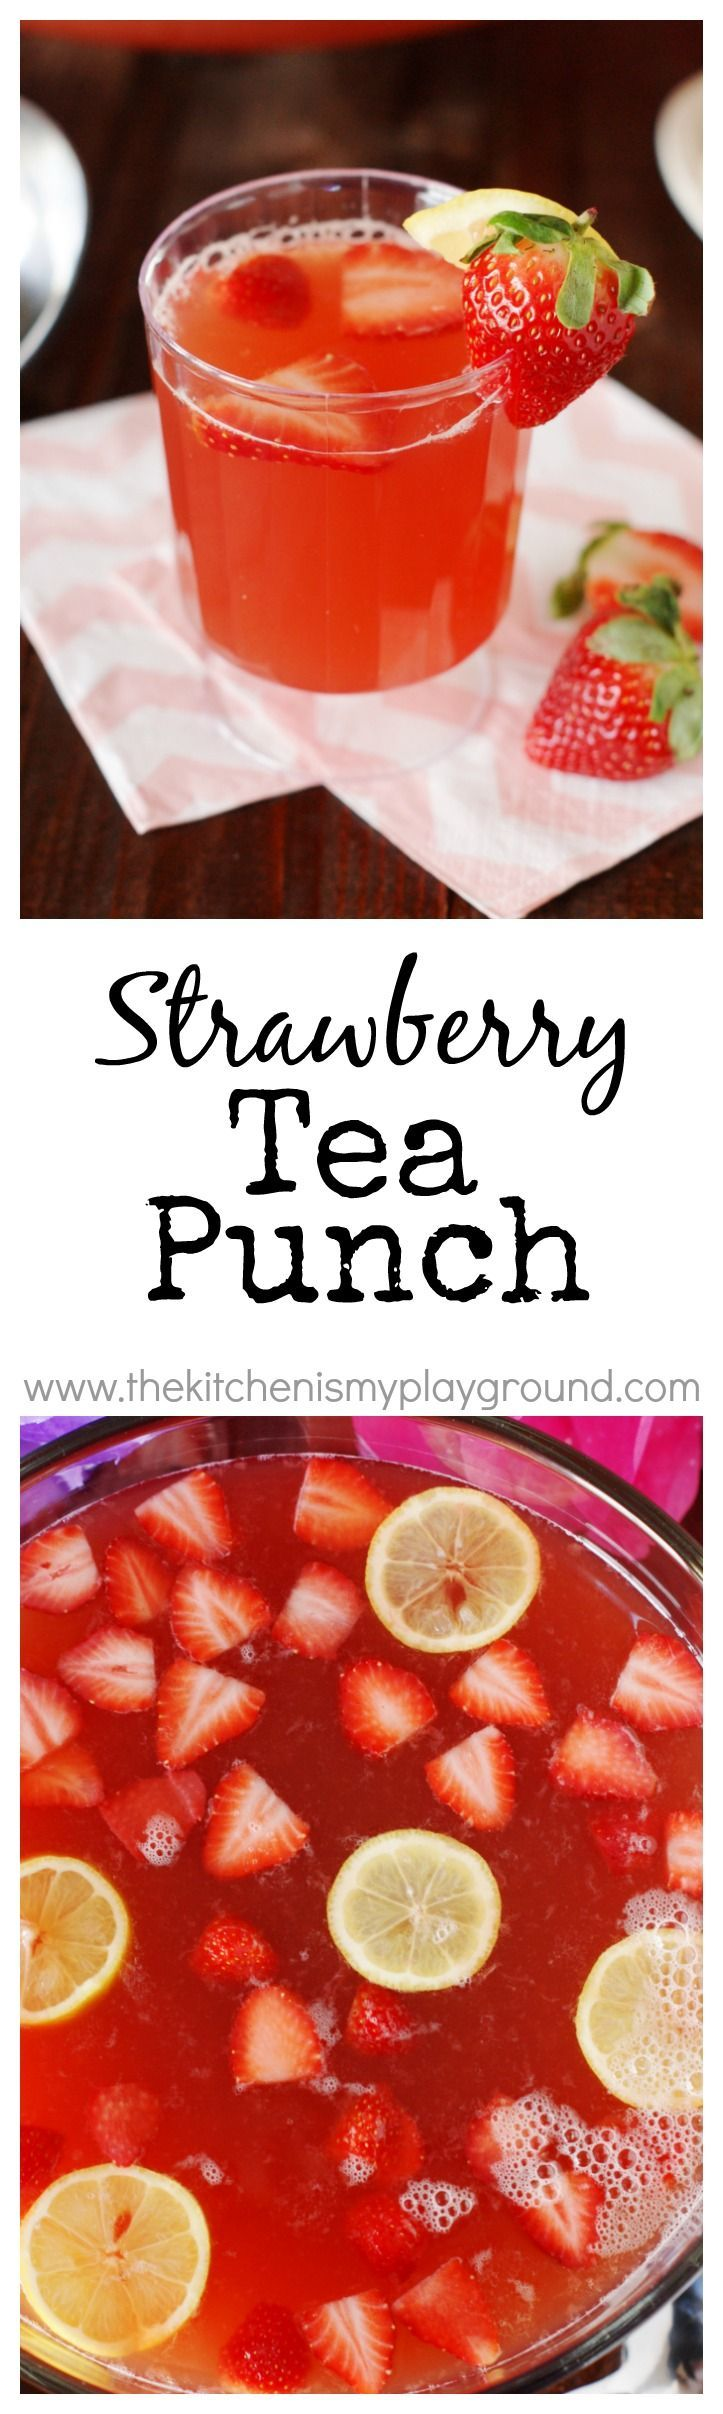 Strawberry Tea Punch ~ A amazingly delicious, crowd-pleasing punch! Perfect for a tea party, bridal shower, or brunch. http://www.thekitchenismyplayground.com